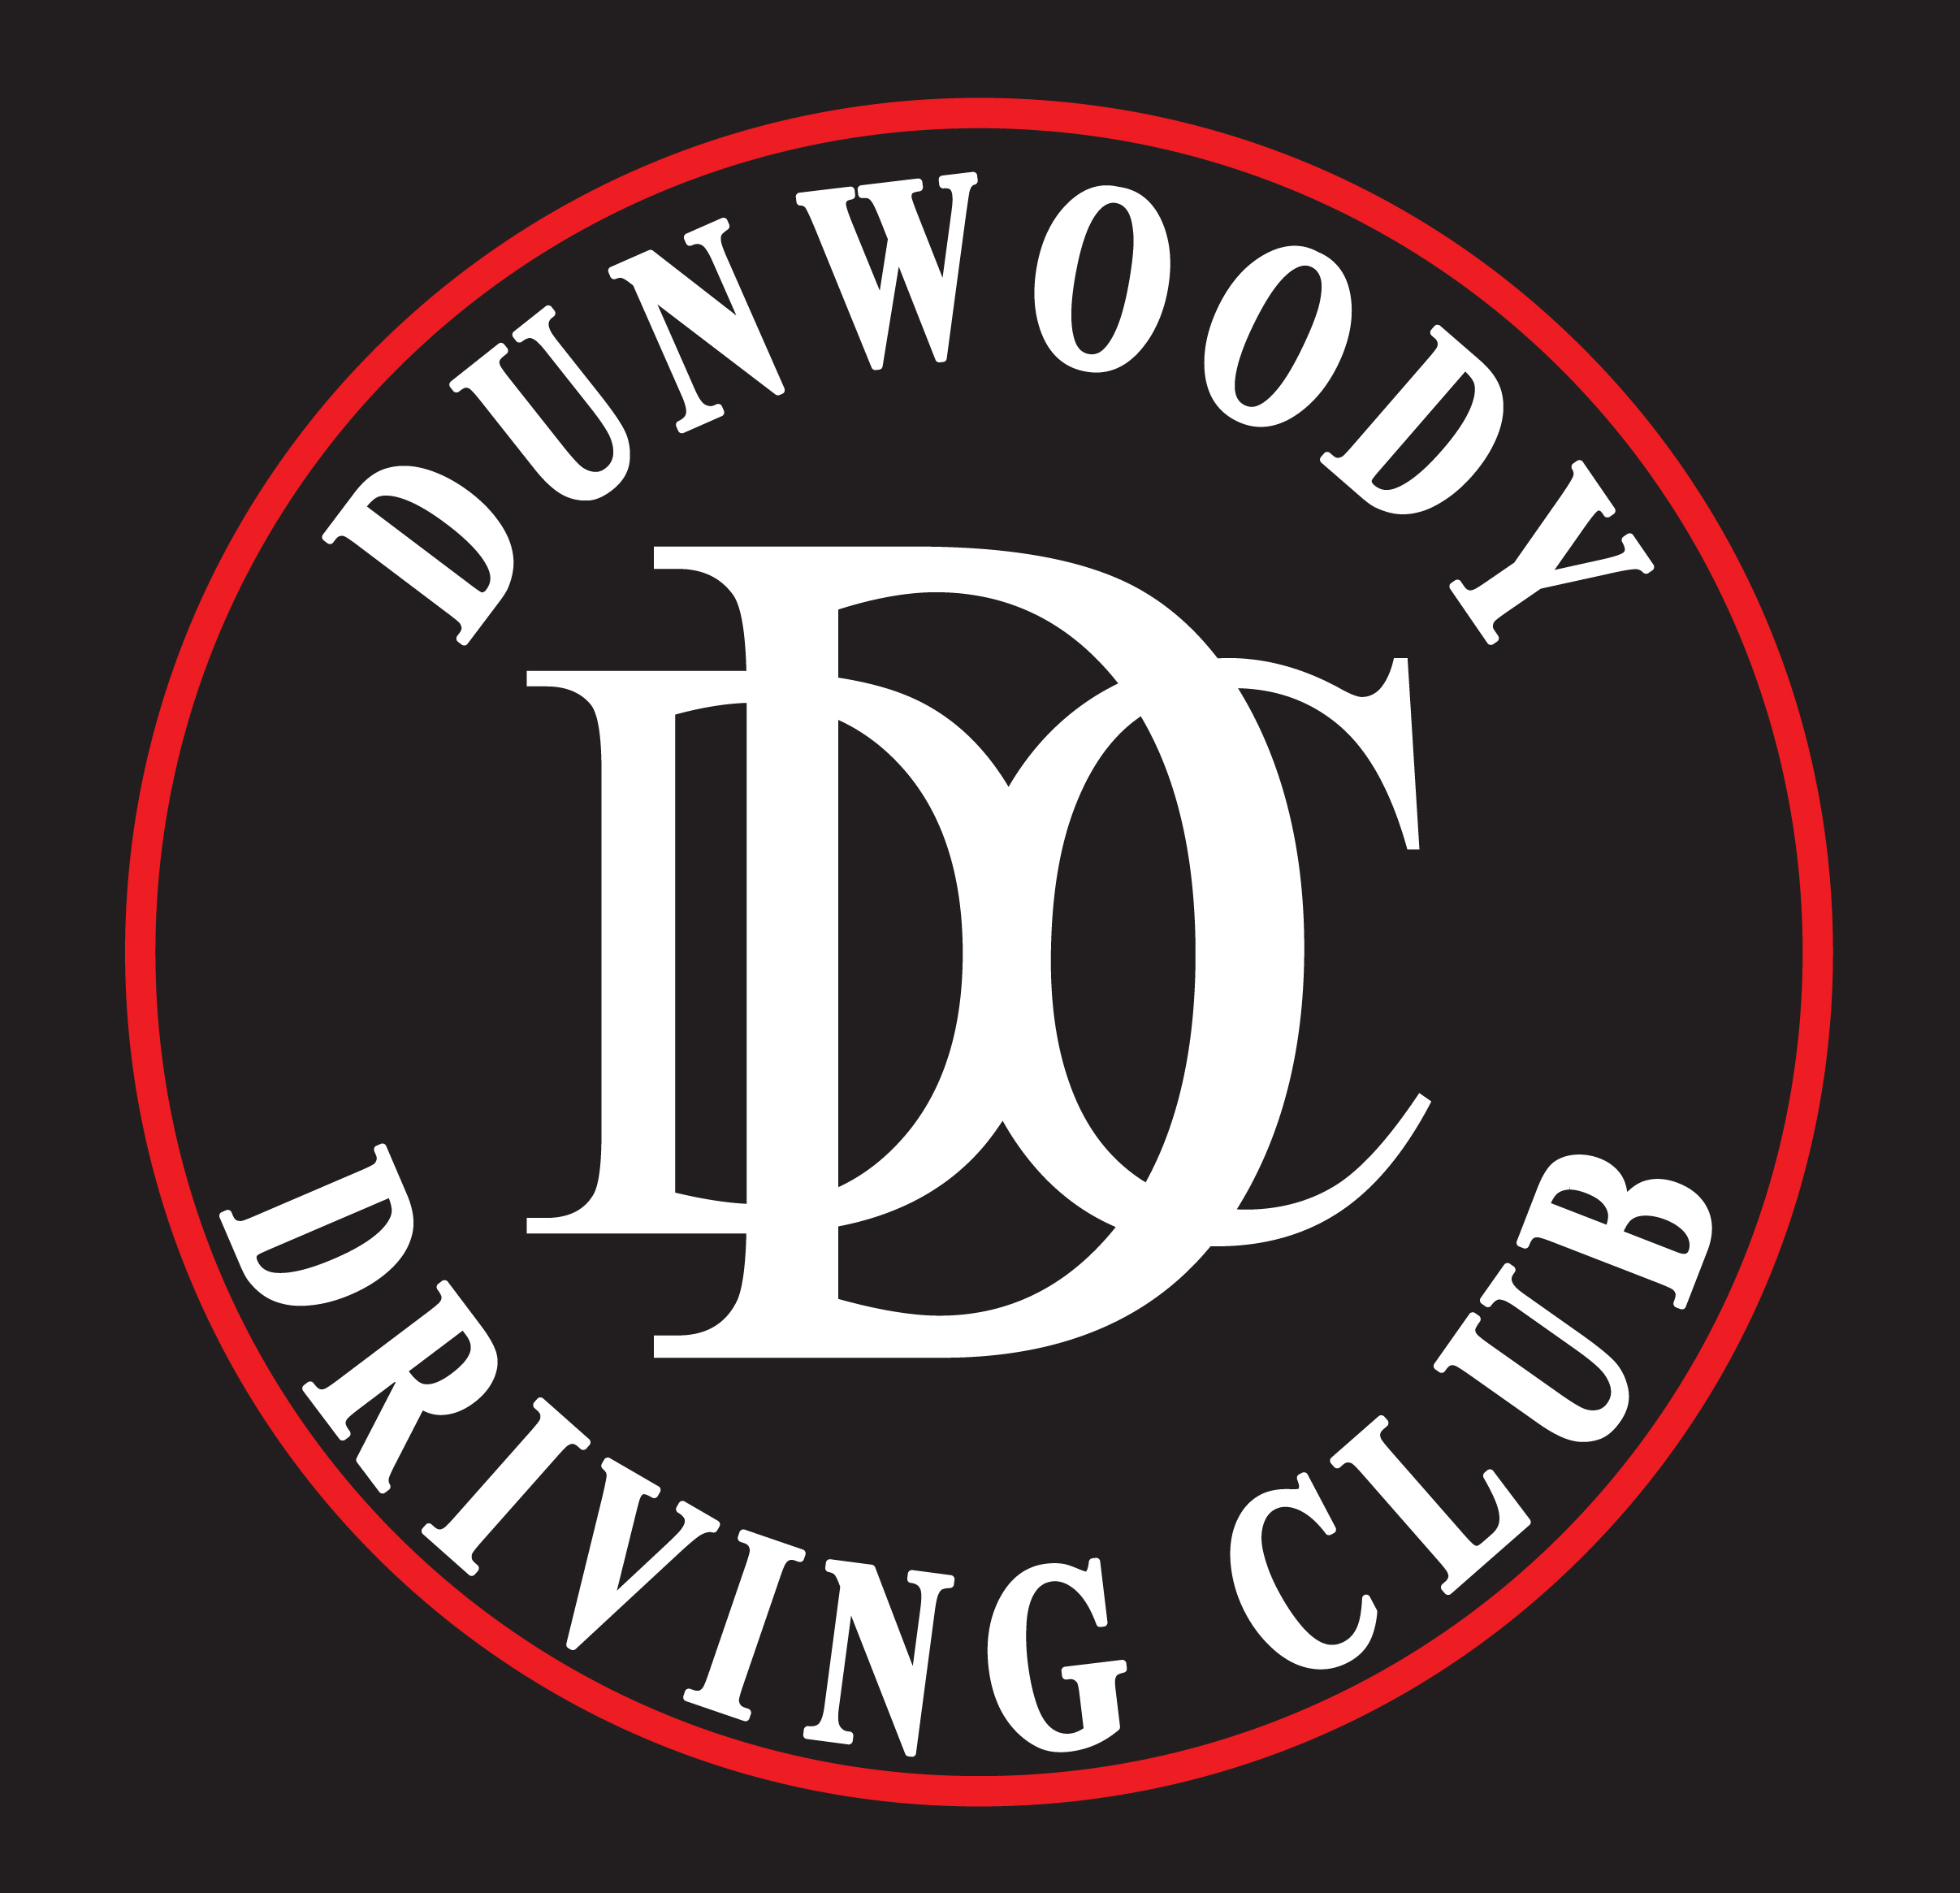 Dunwoody Driving Club